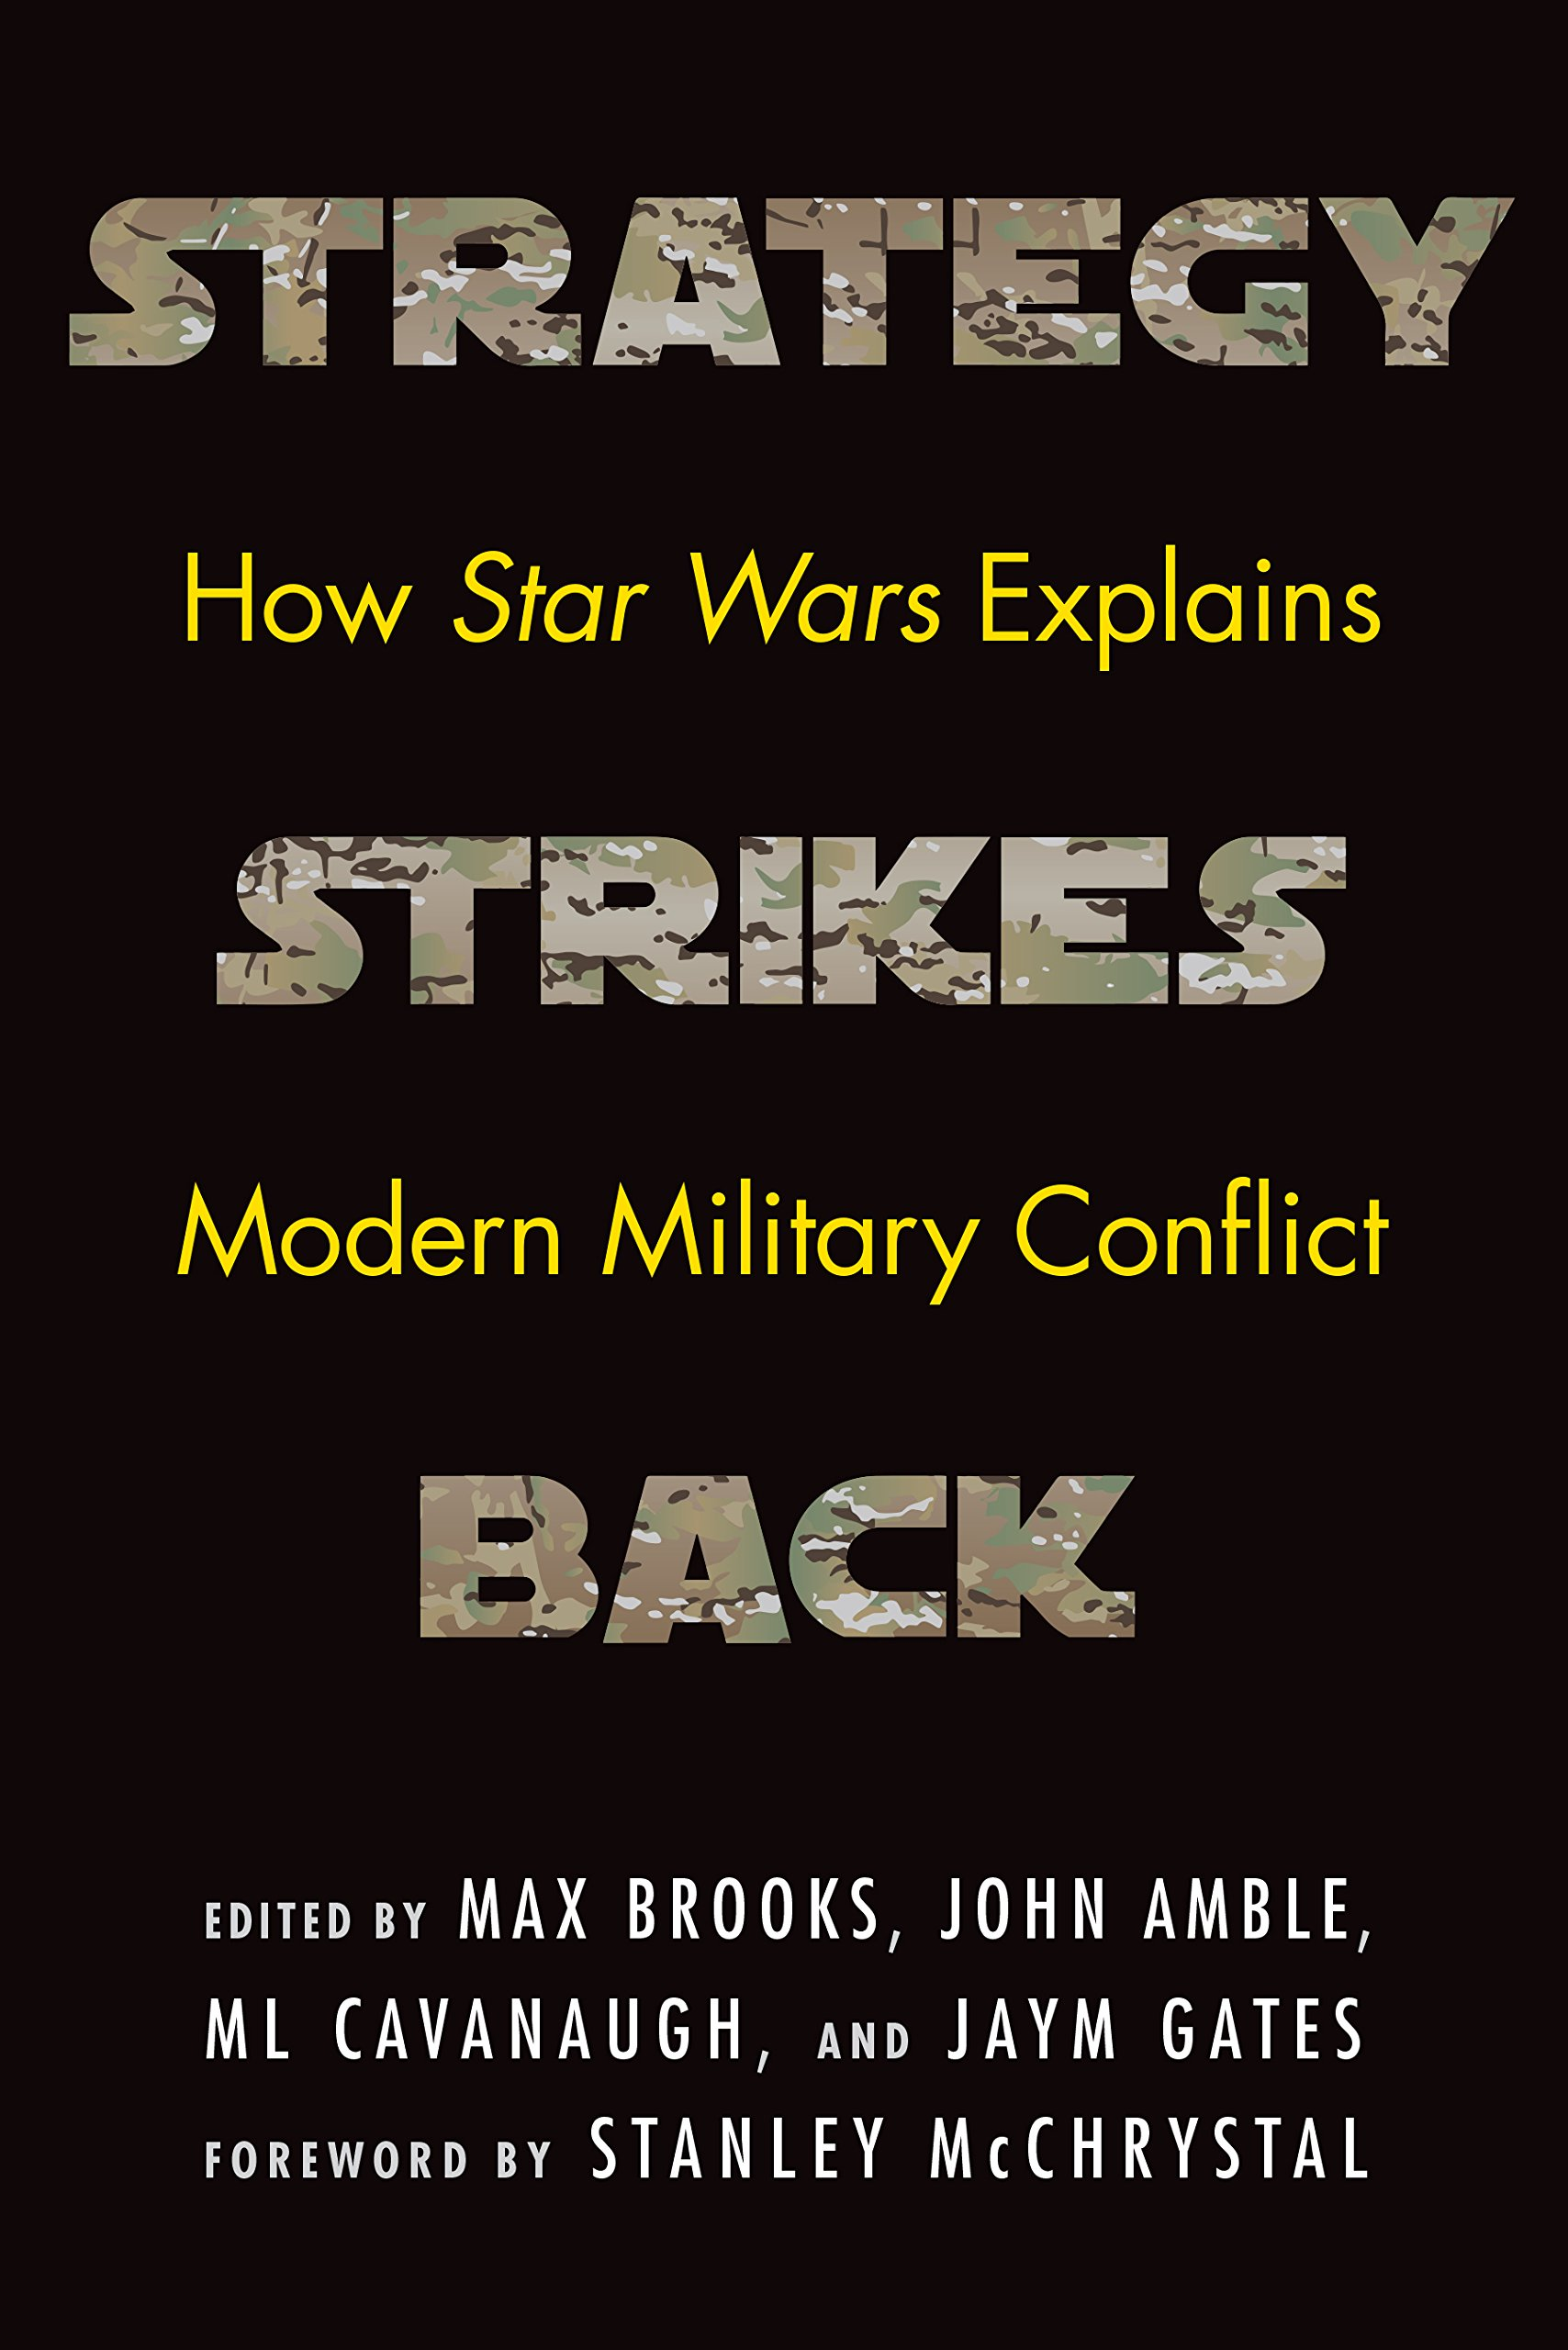 Foreword (Strategy Strikes Back)